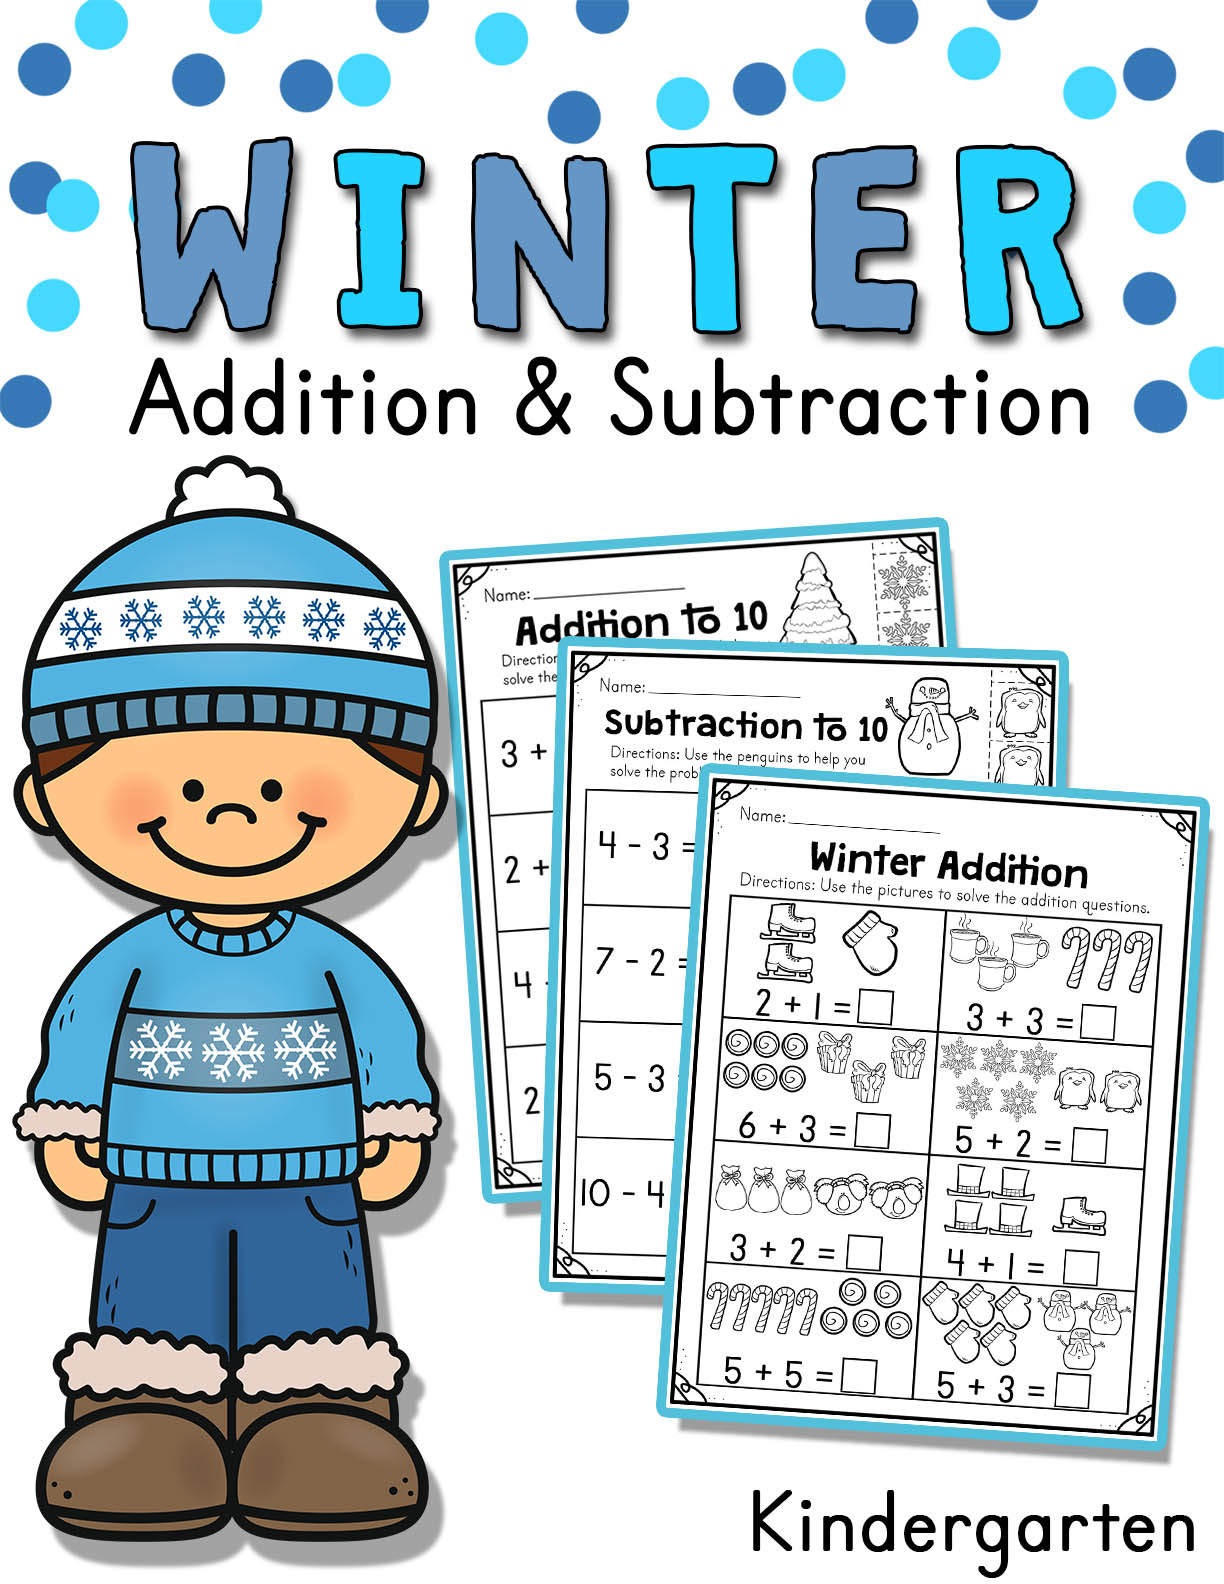 Winter Addition And Subtraction Worksheets 1 To 10